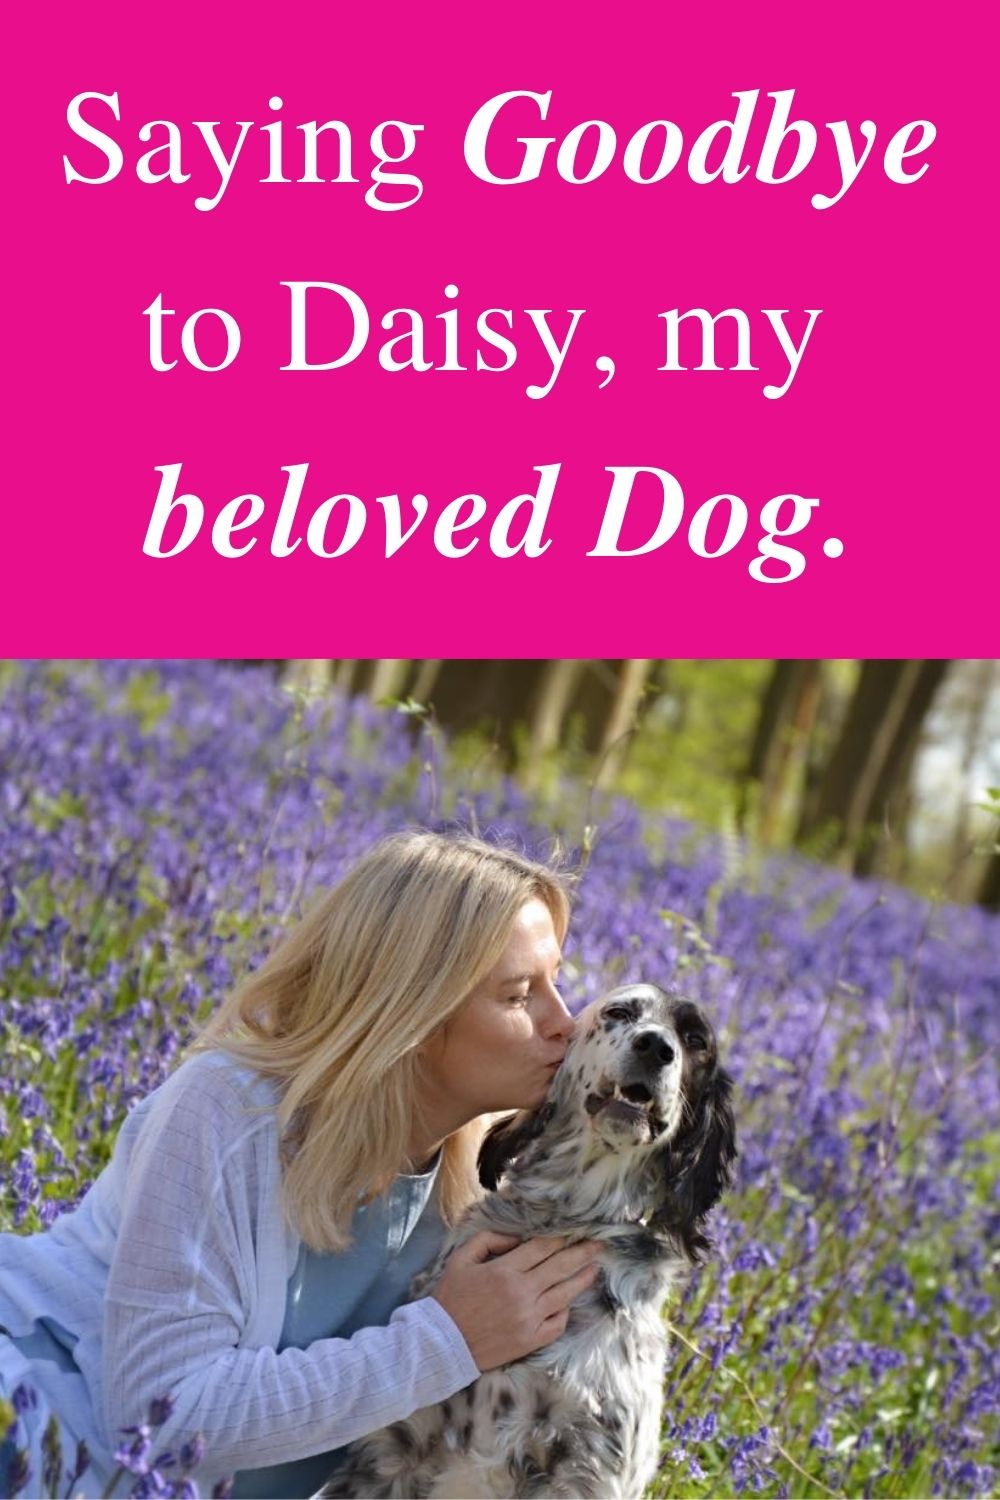 Saying Goodbye to Daisy, my beloved Dog